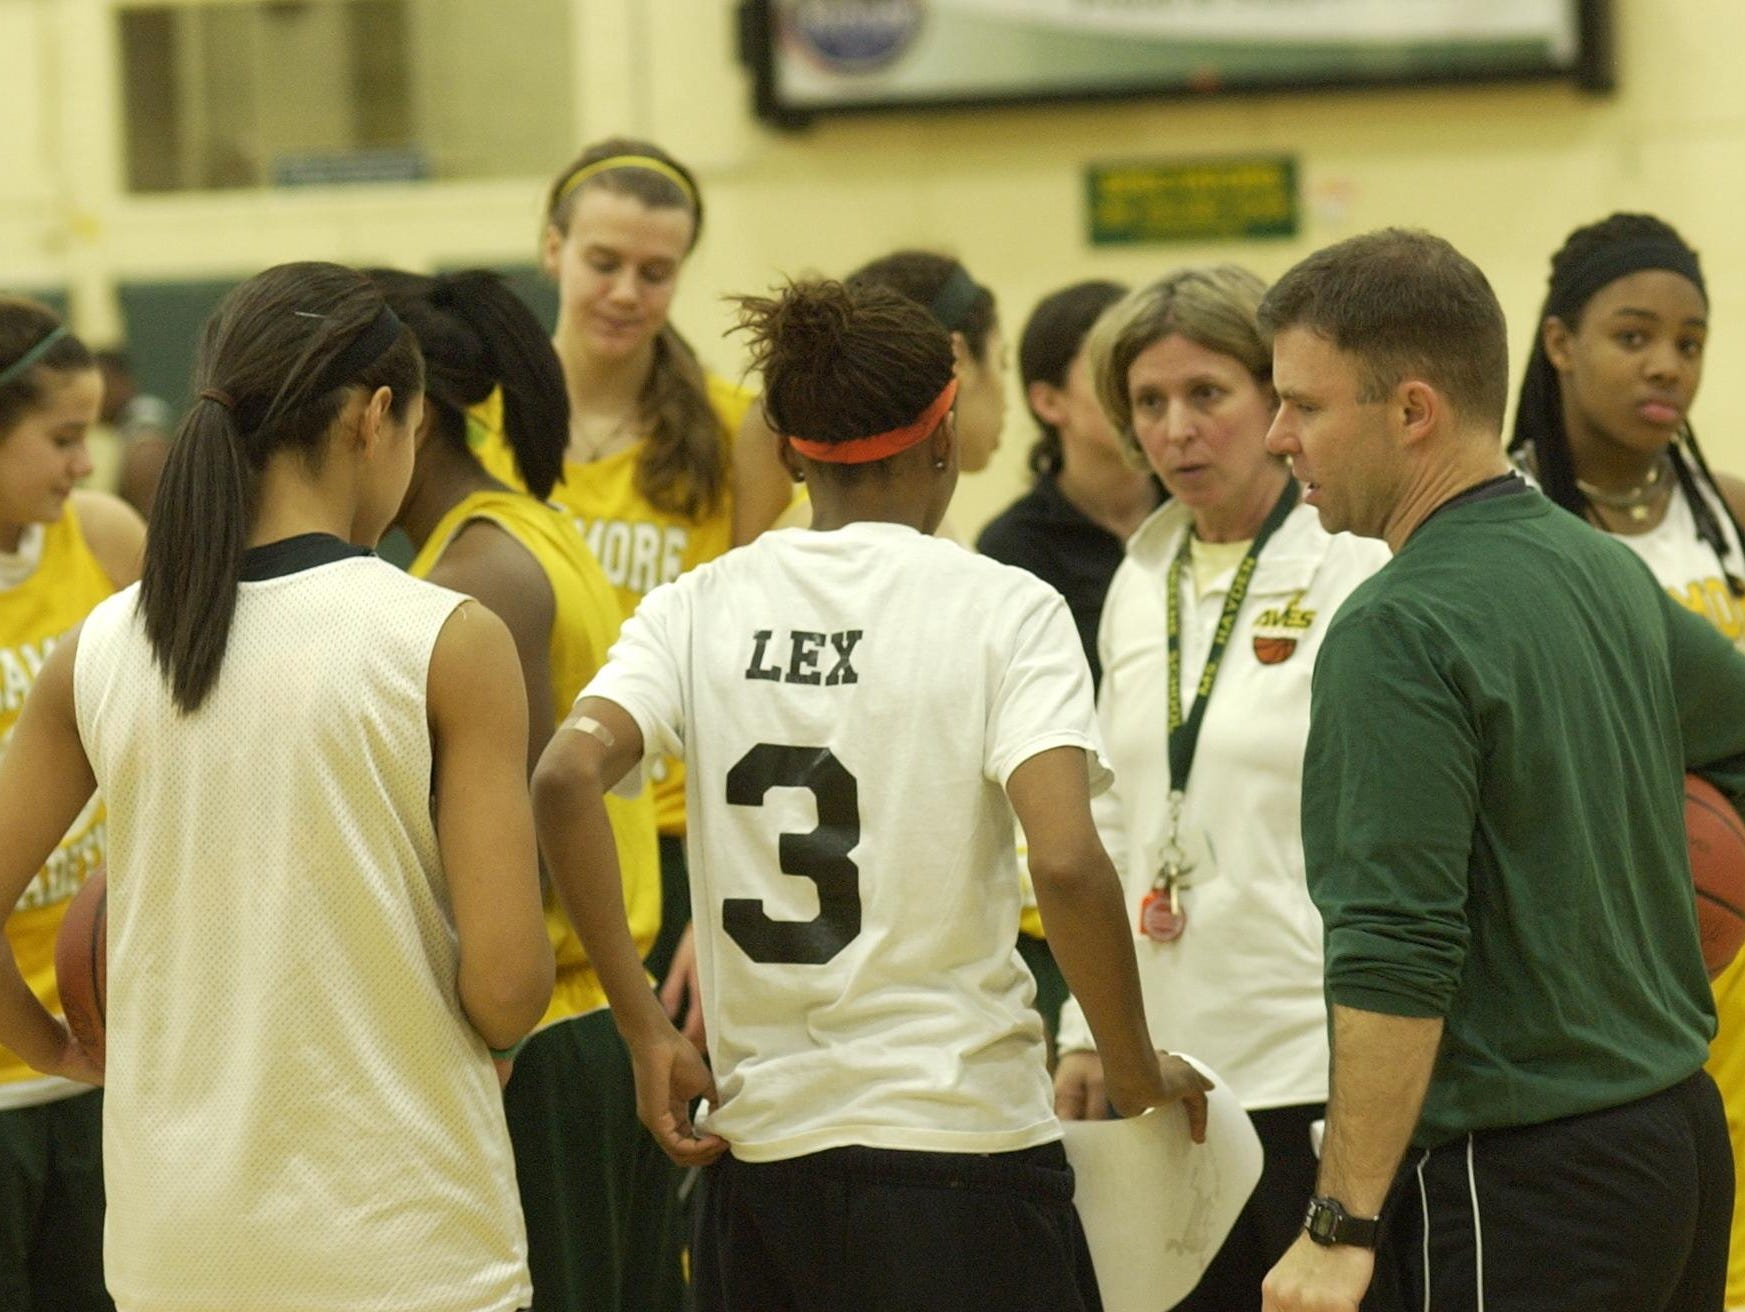 Lex Newbolt, No. 3, listens to then-Sycamore coach Paula Hayden (right of Newbolt wearing whistle). Hayden retired as varsity coach two seasons ago and recently retired from teaching at Edwin H. Greene Intermediate School.